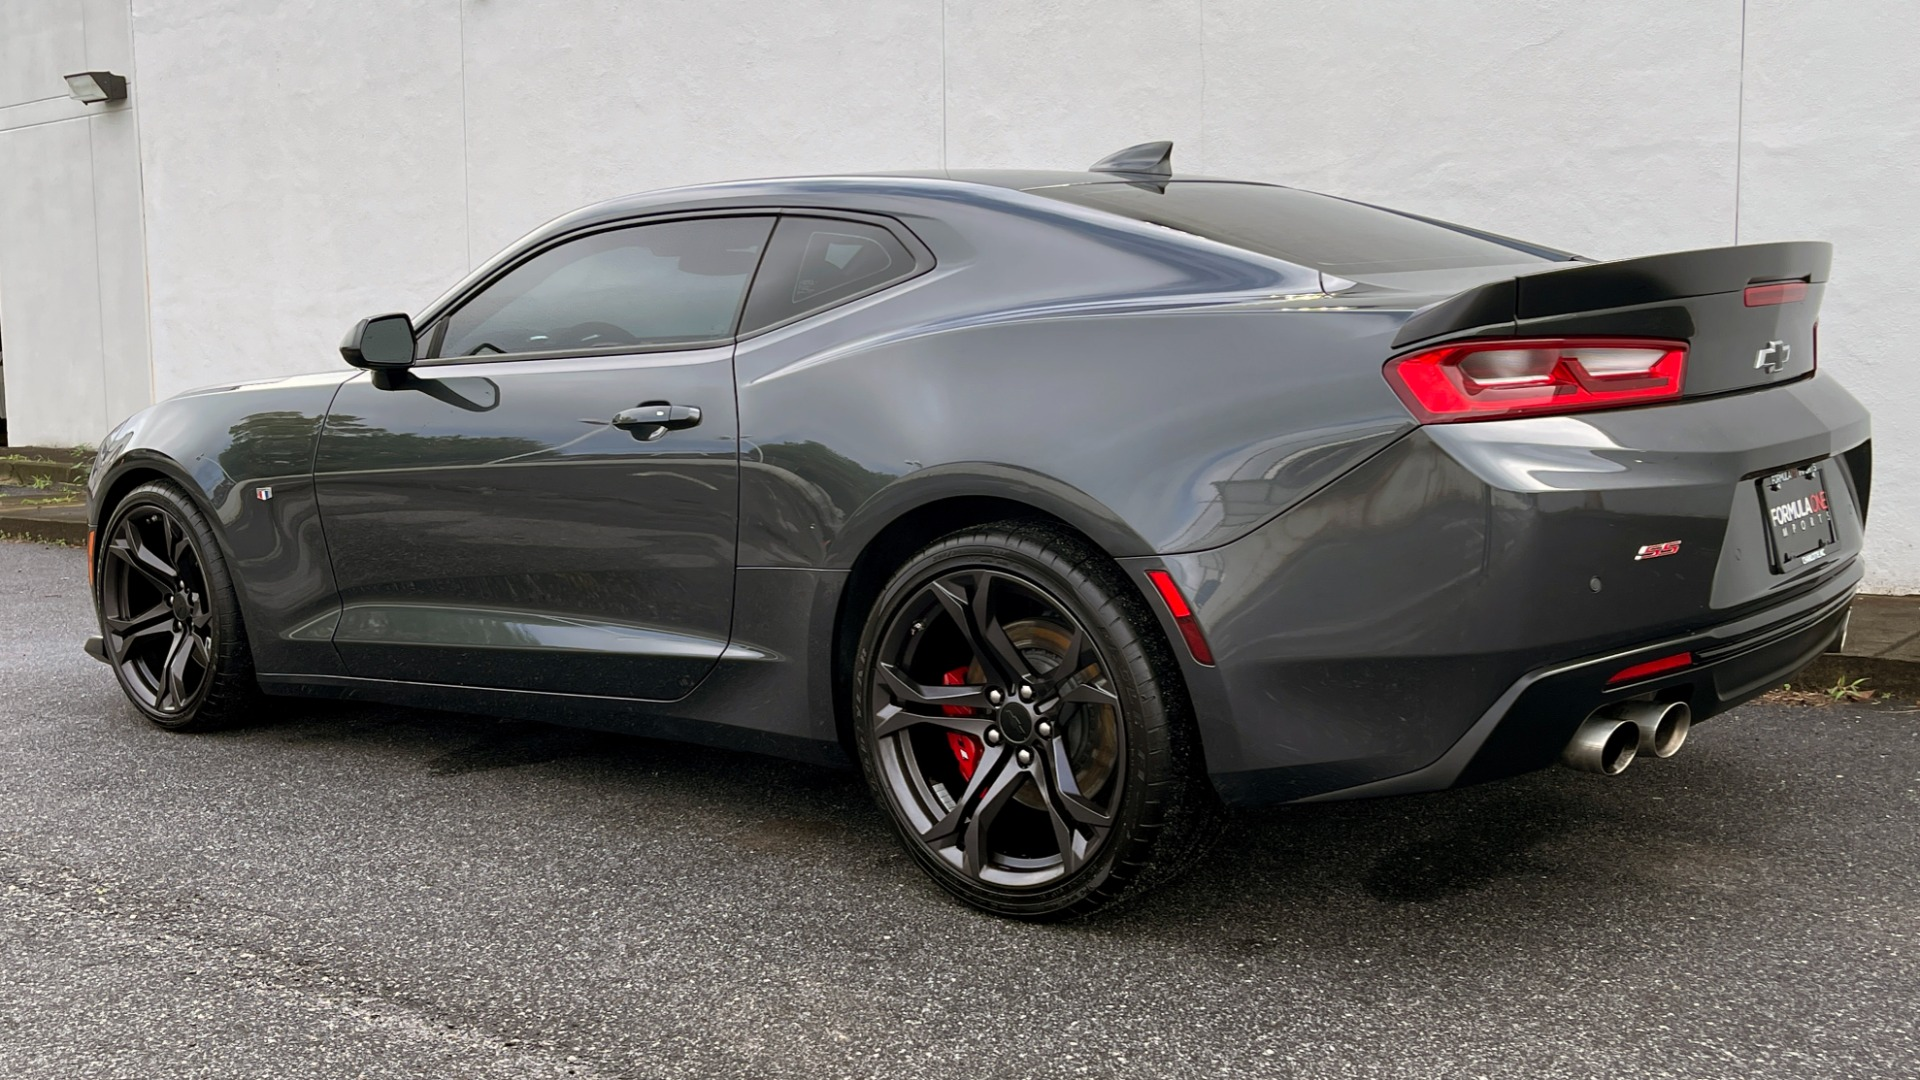 Used 2018 Chevrolet CAMARO 2SS / 6.2L V8 / MANUAL / 1LE TRACK PKG / NAV / BOSE / REARVIEW for sale $39,795 at Formula Imports in Charlotte NC 28227 7